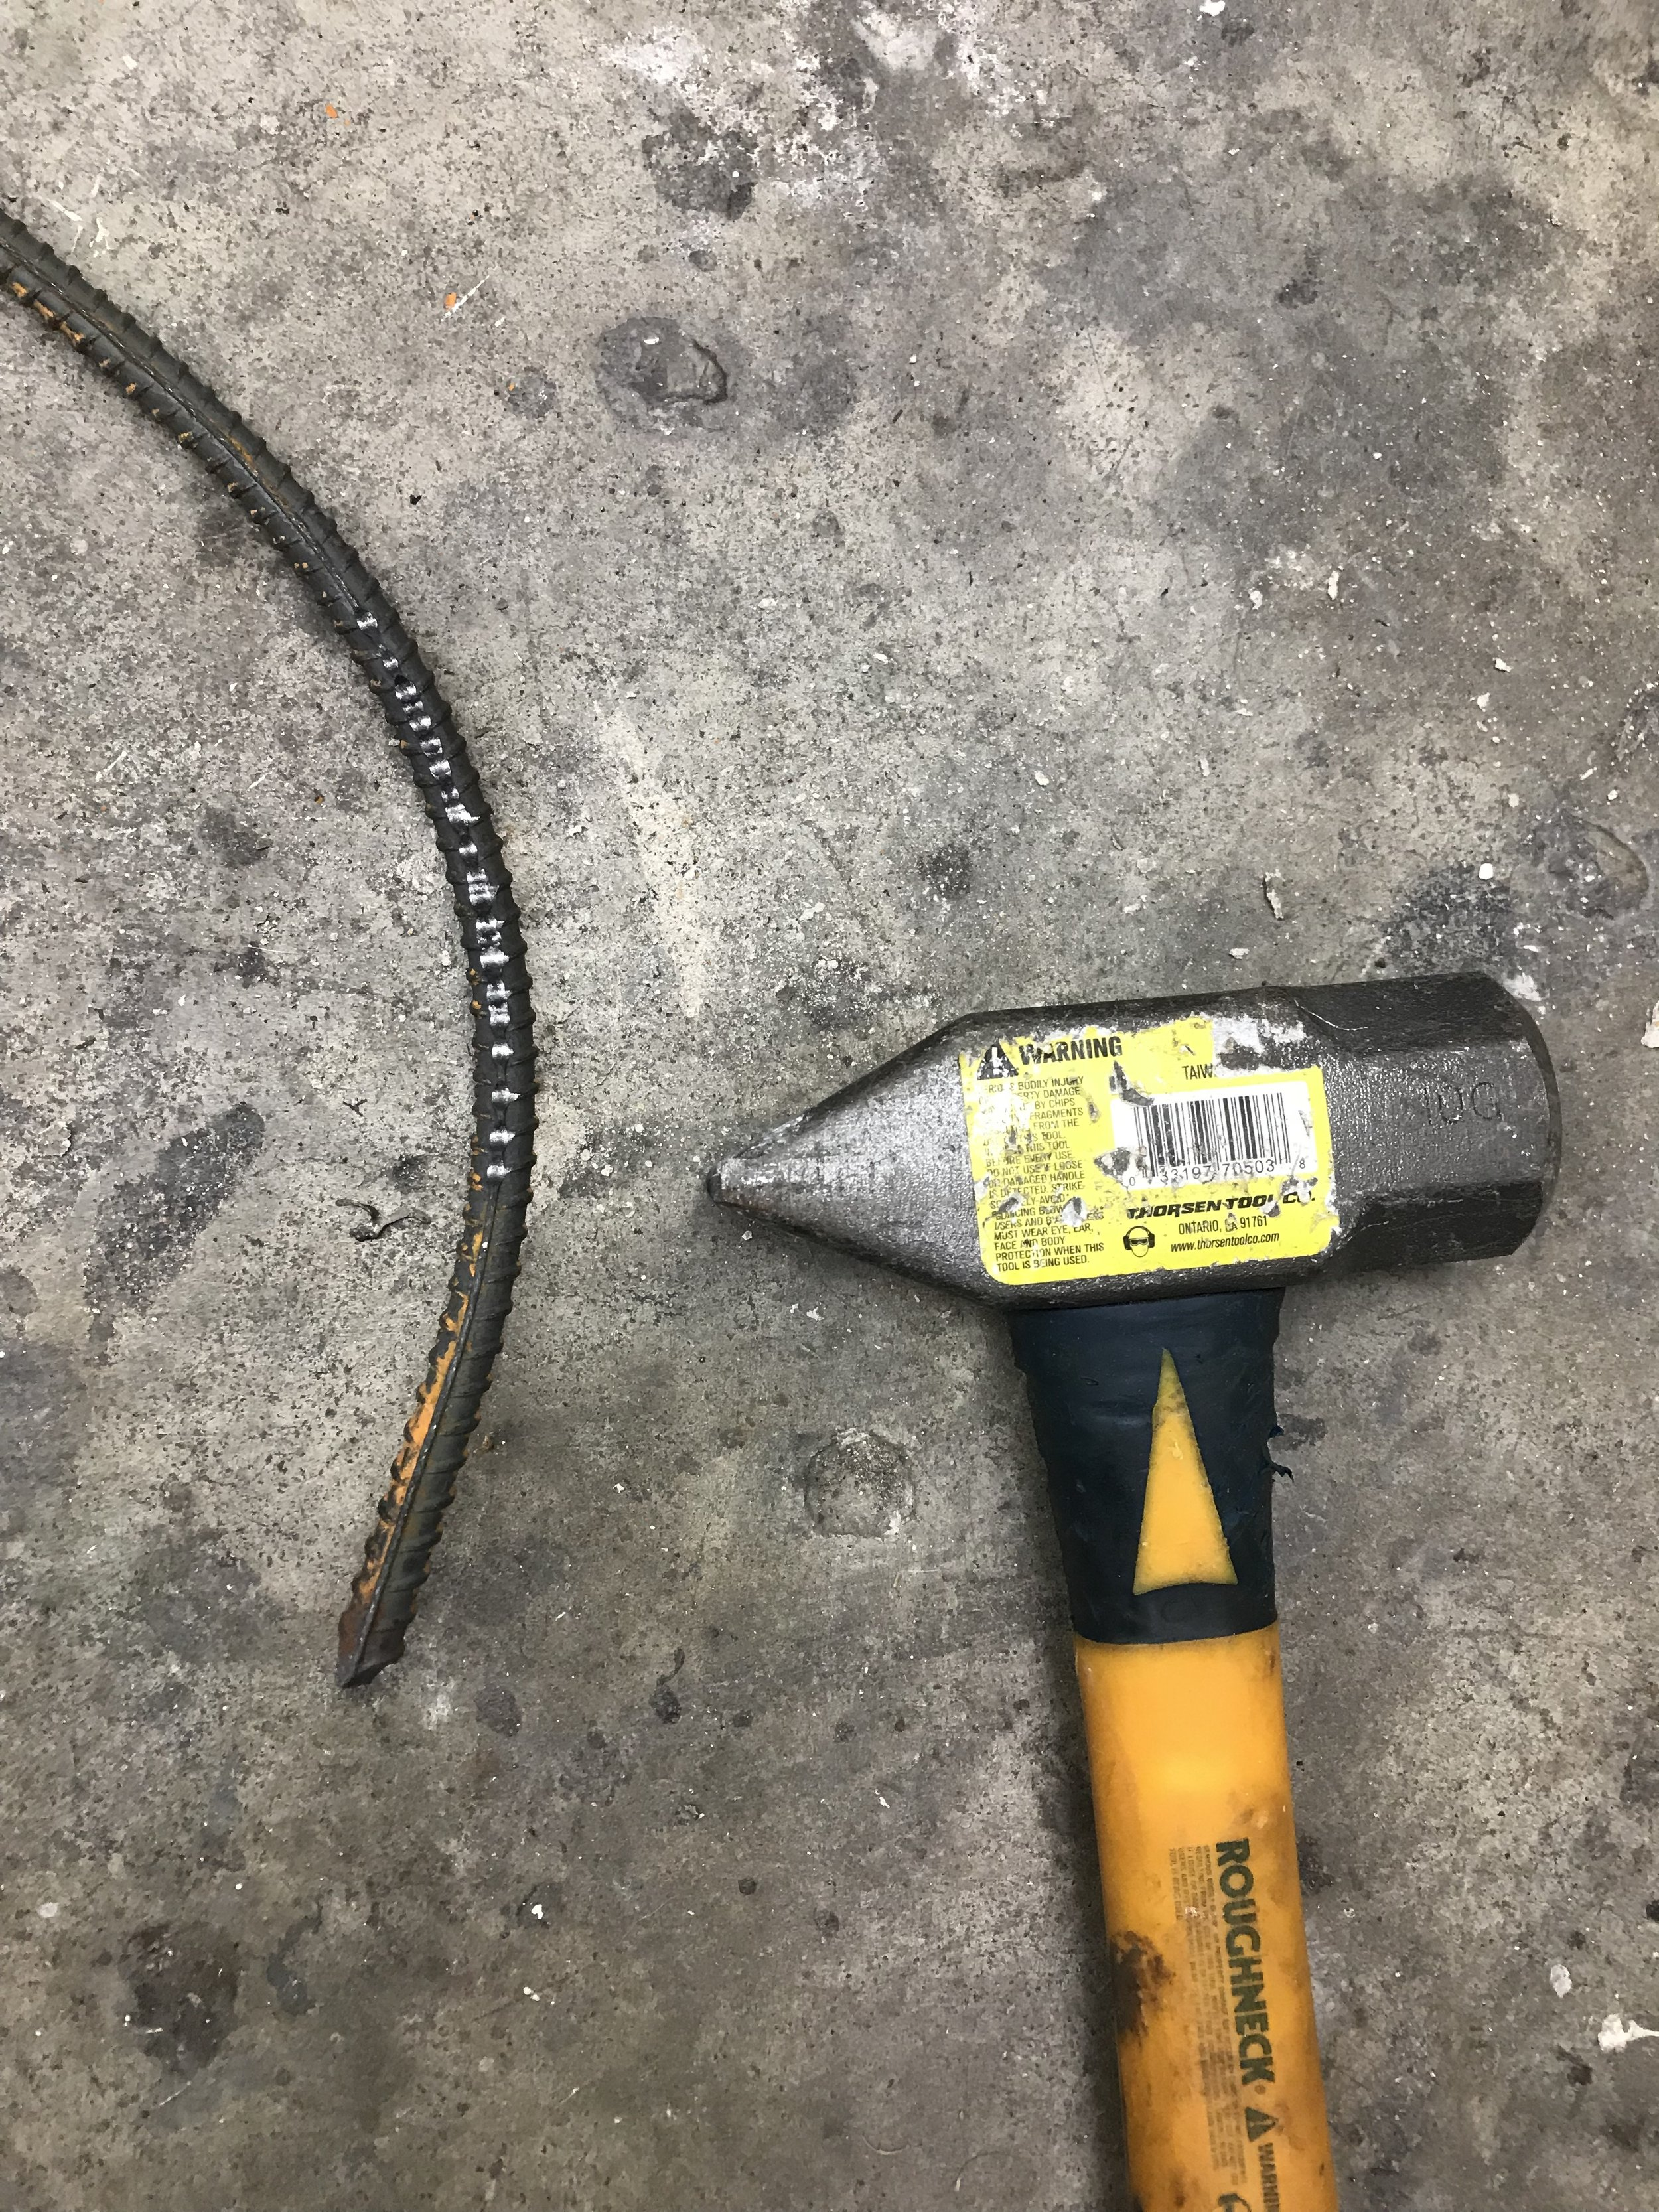 With small taps I use a sledgehammer to make a gentle curve to a leg.